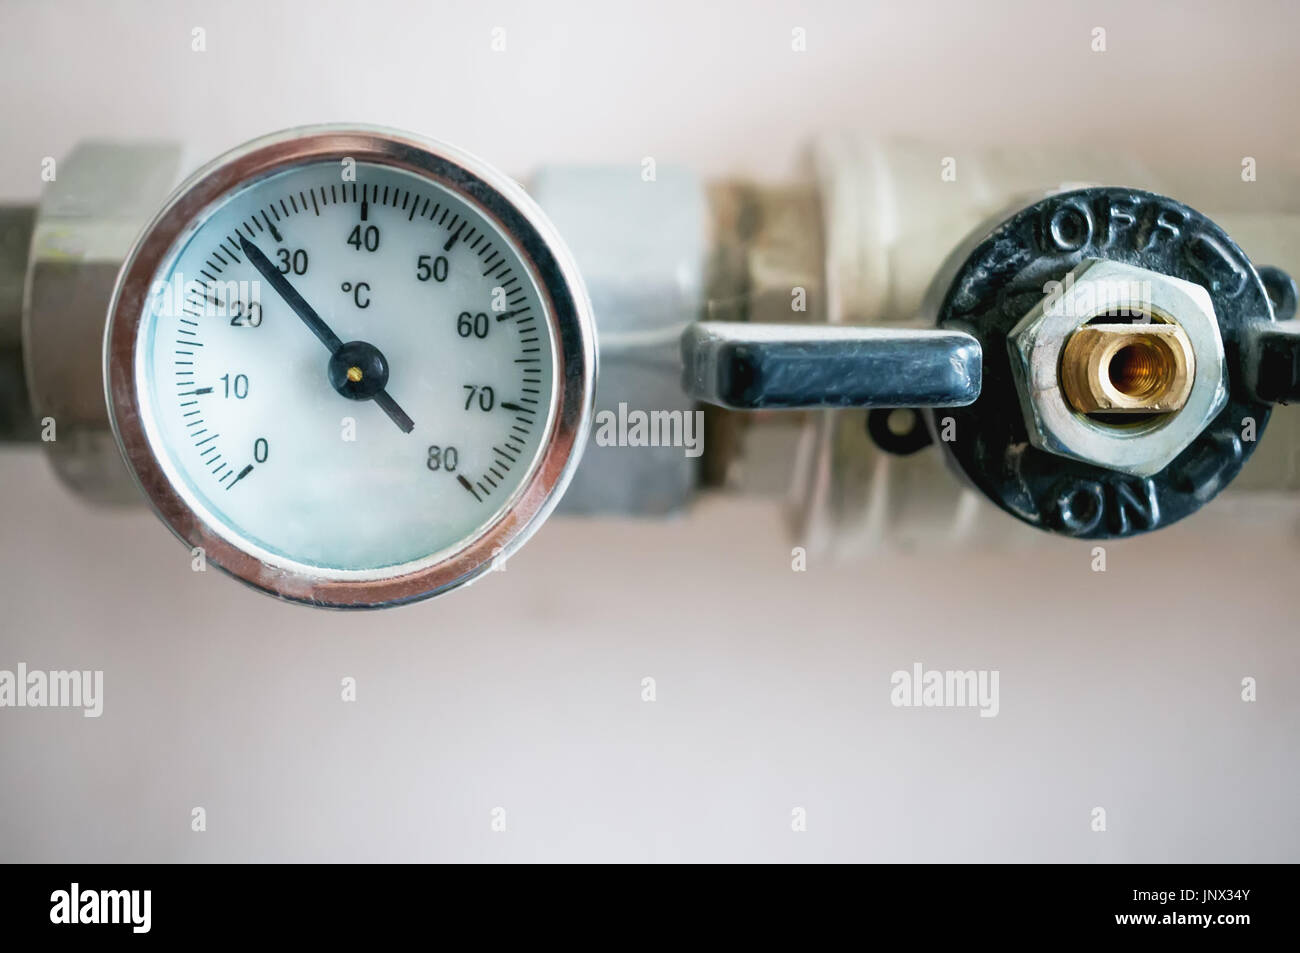 Pressure gauge for regulating the temperature of the water in the heating system. - Stock Image